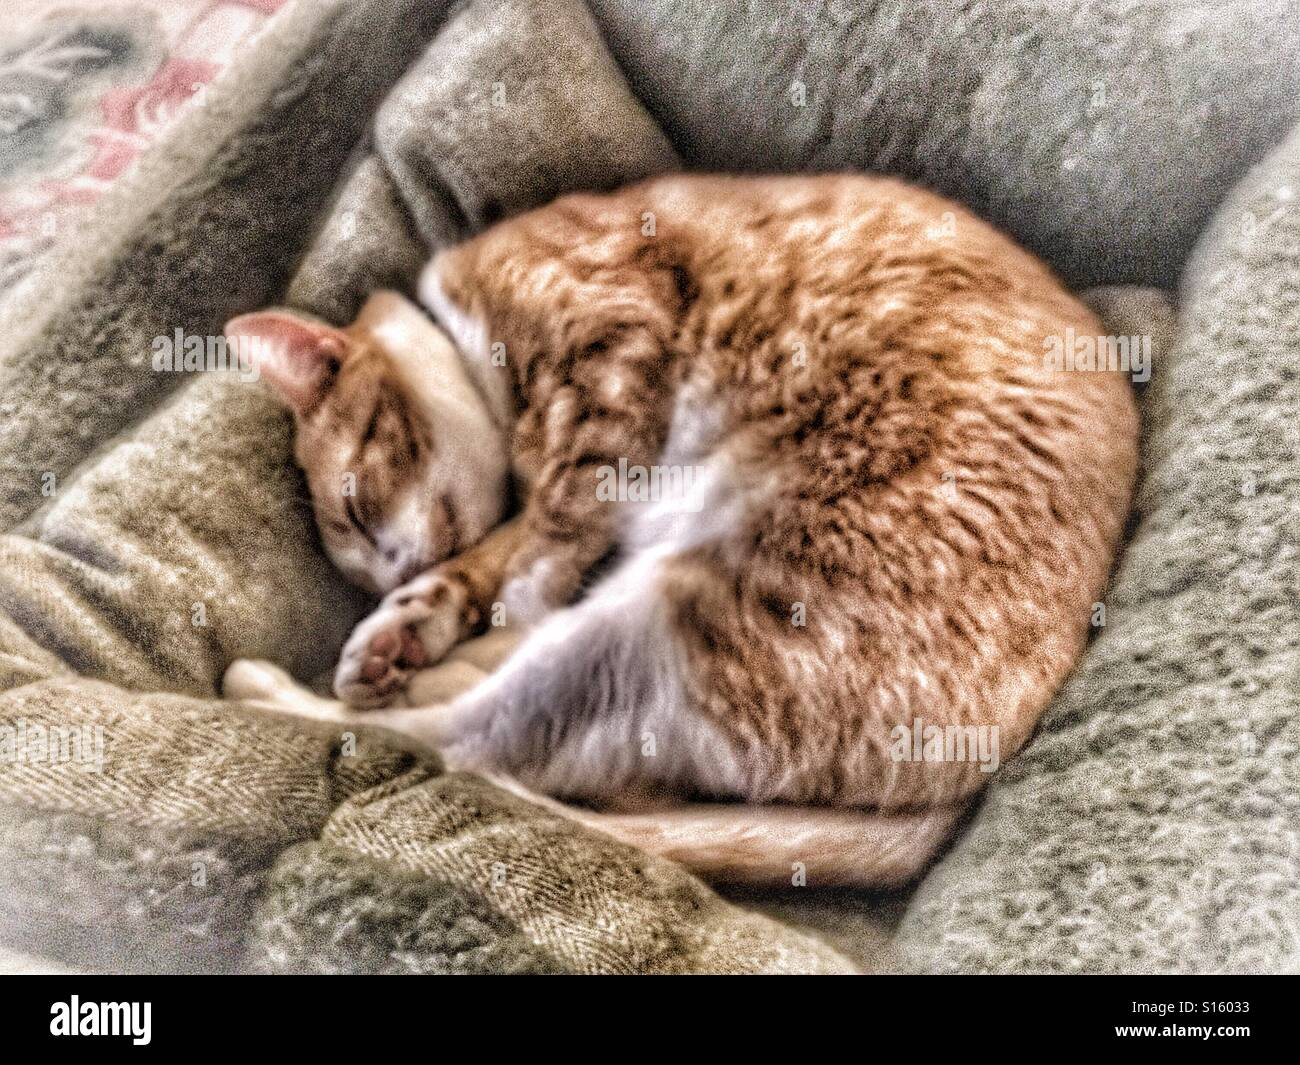 Ginger cat fast asleep in a dog's bed - Stock Image